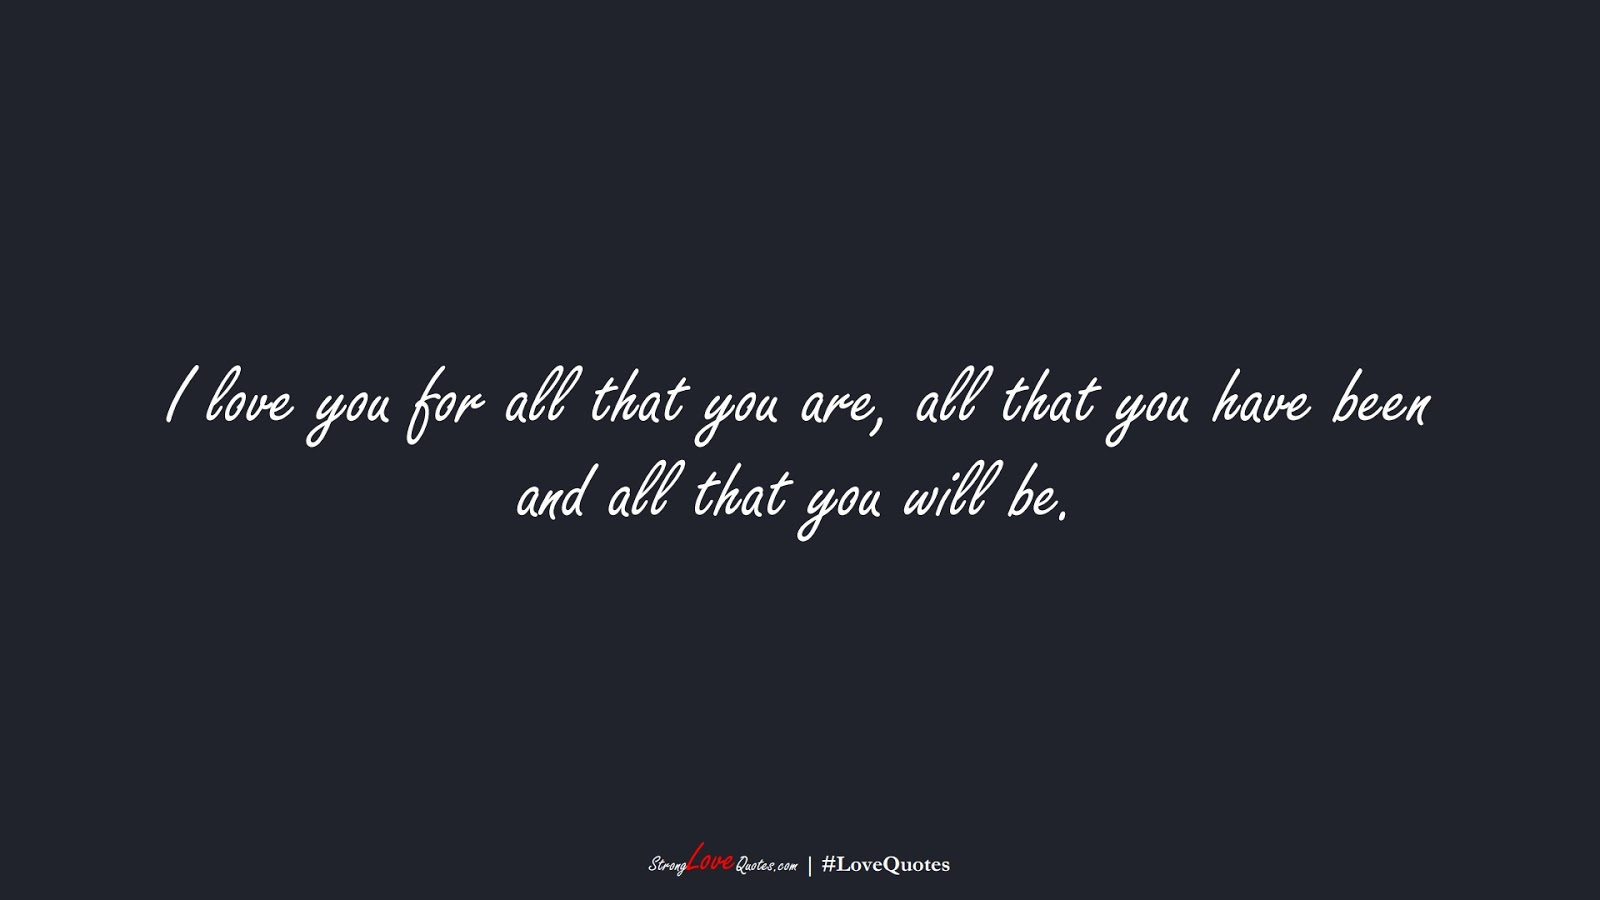 I love you for all that you are, all that you have been and all that you will be.FALSE